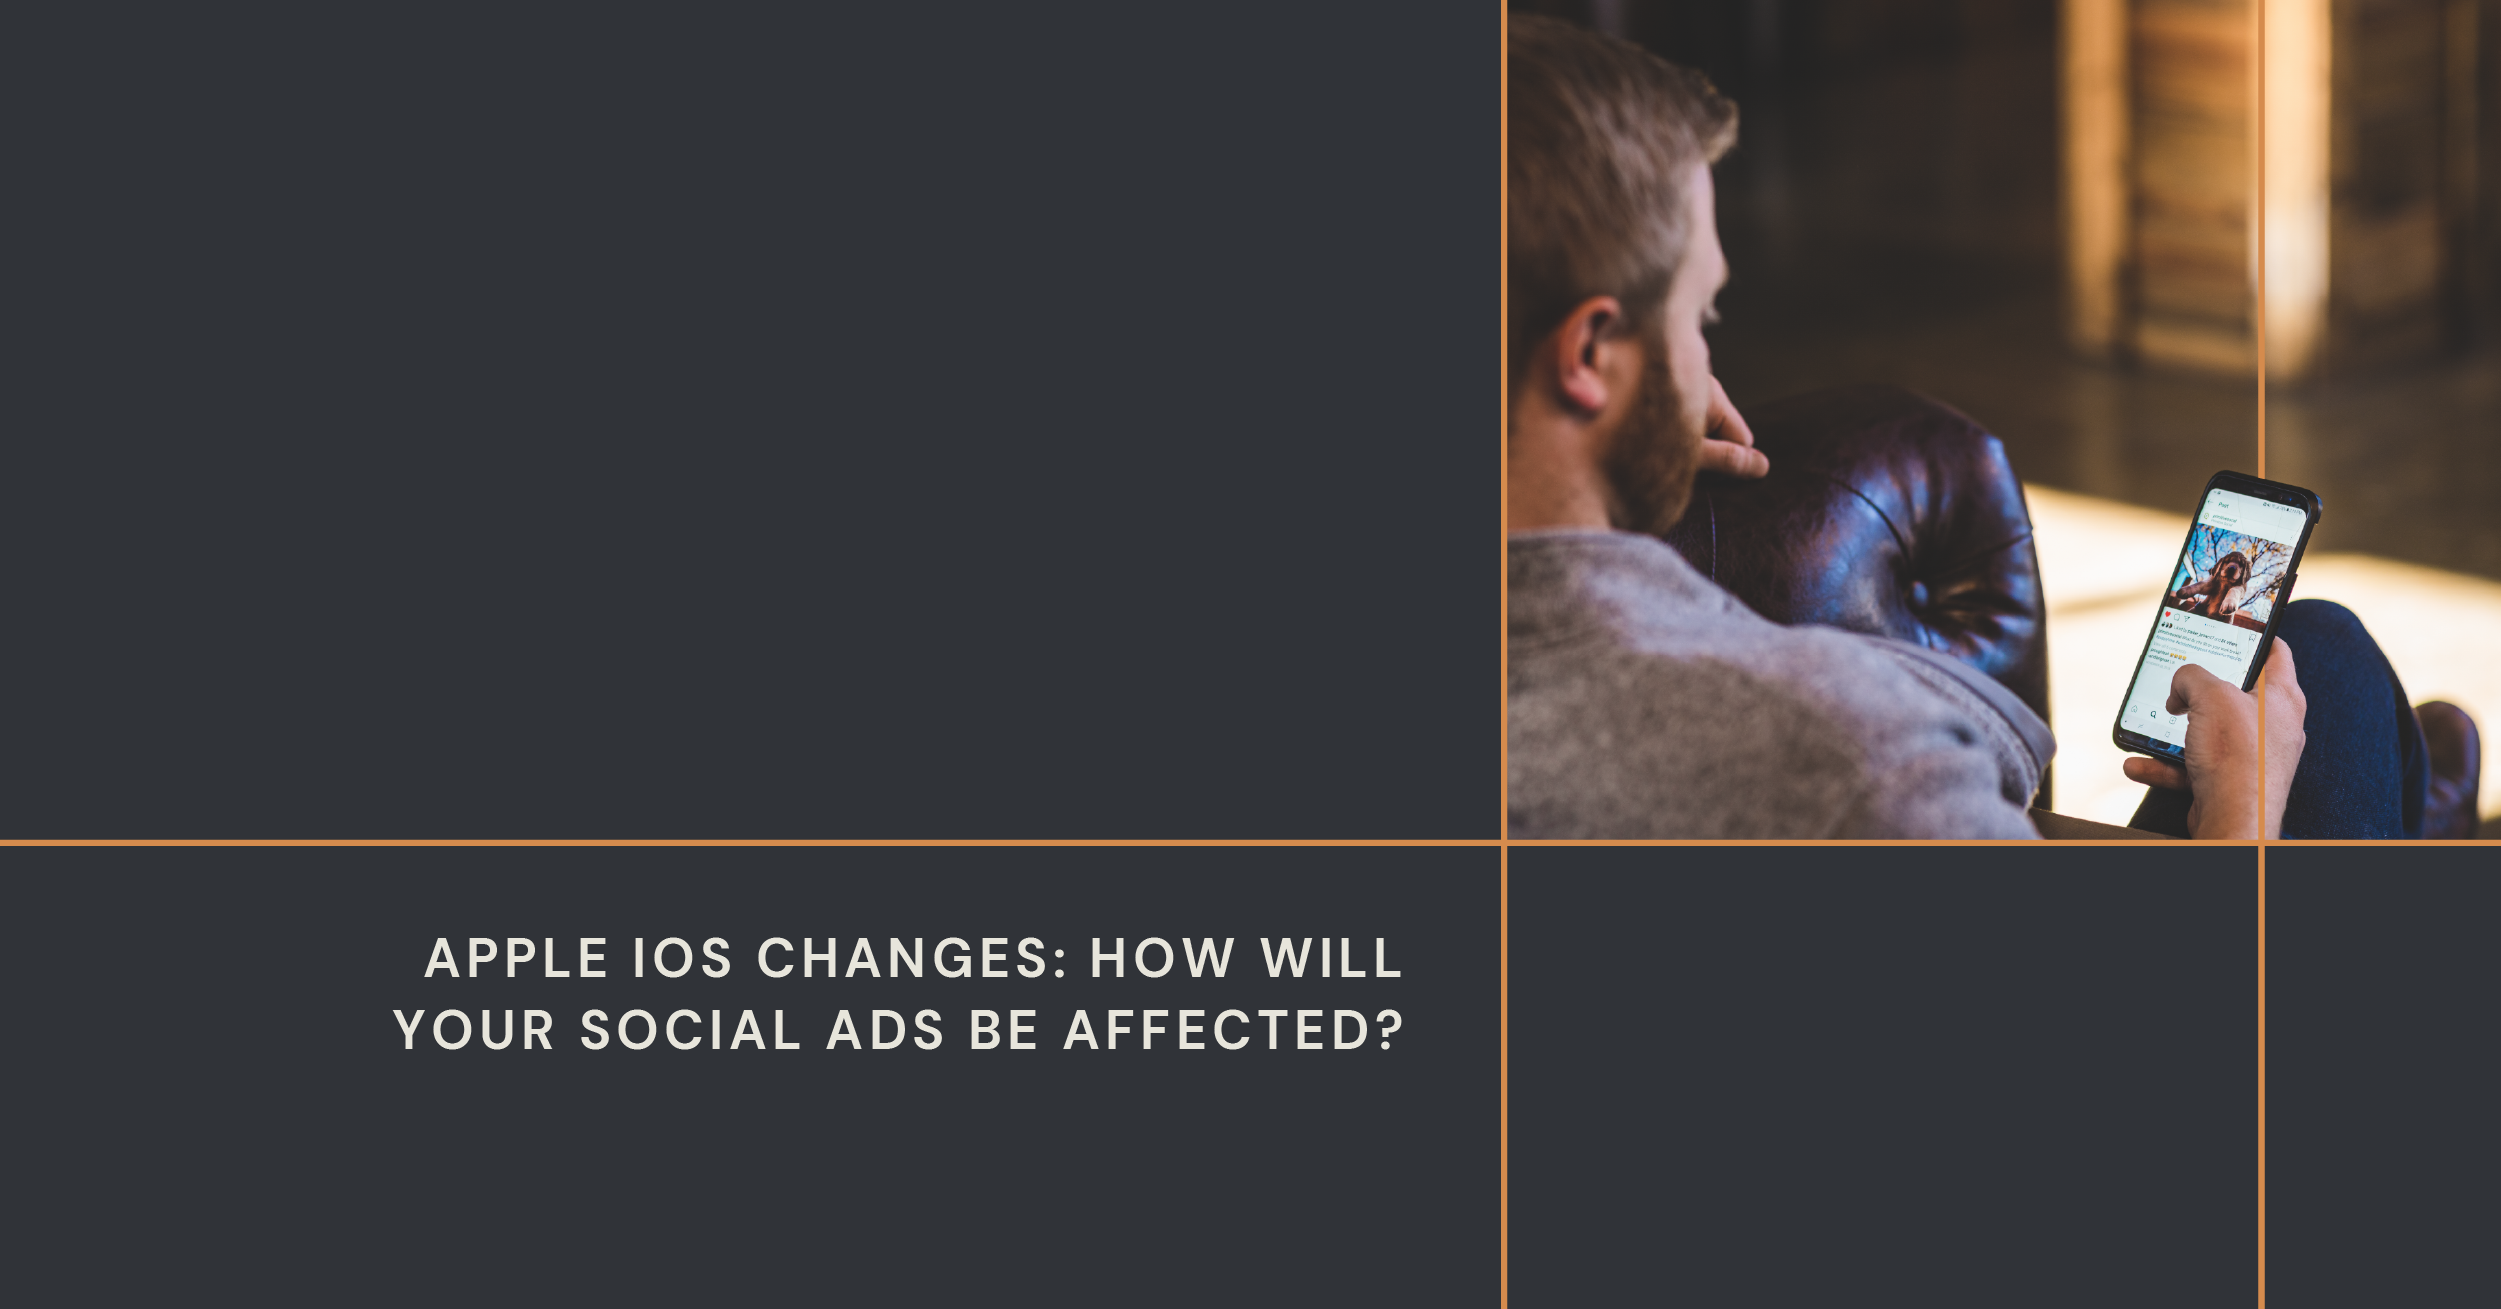 apple iOS changes and social ads